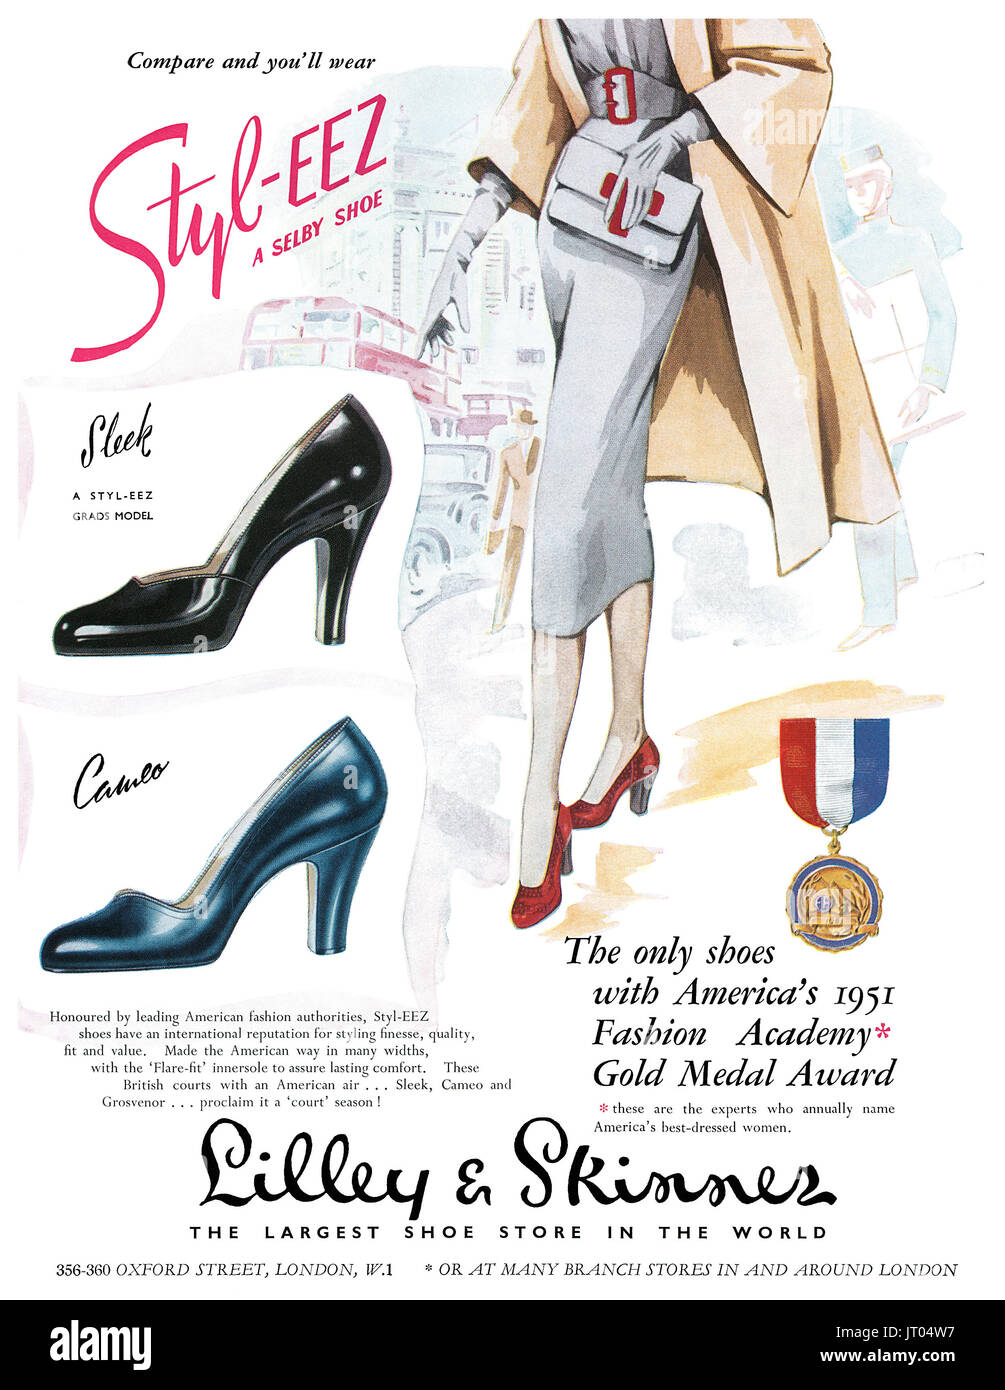 1951 British advertisement for Selby Styl-Eez shoes at Lilley & Skinner. - Stock Image